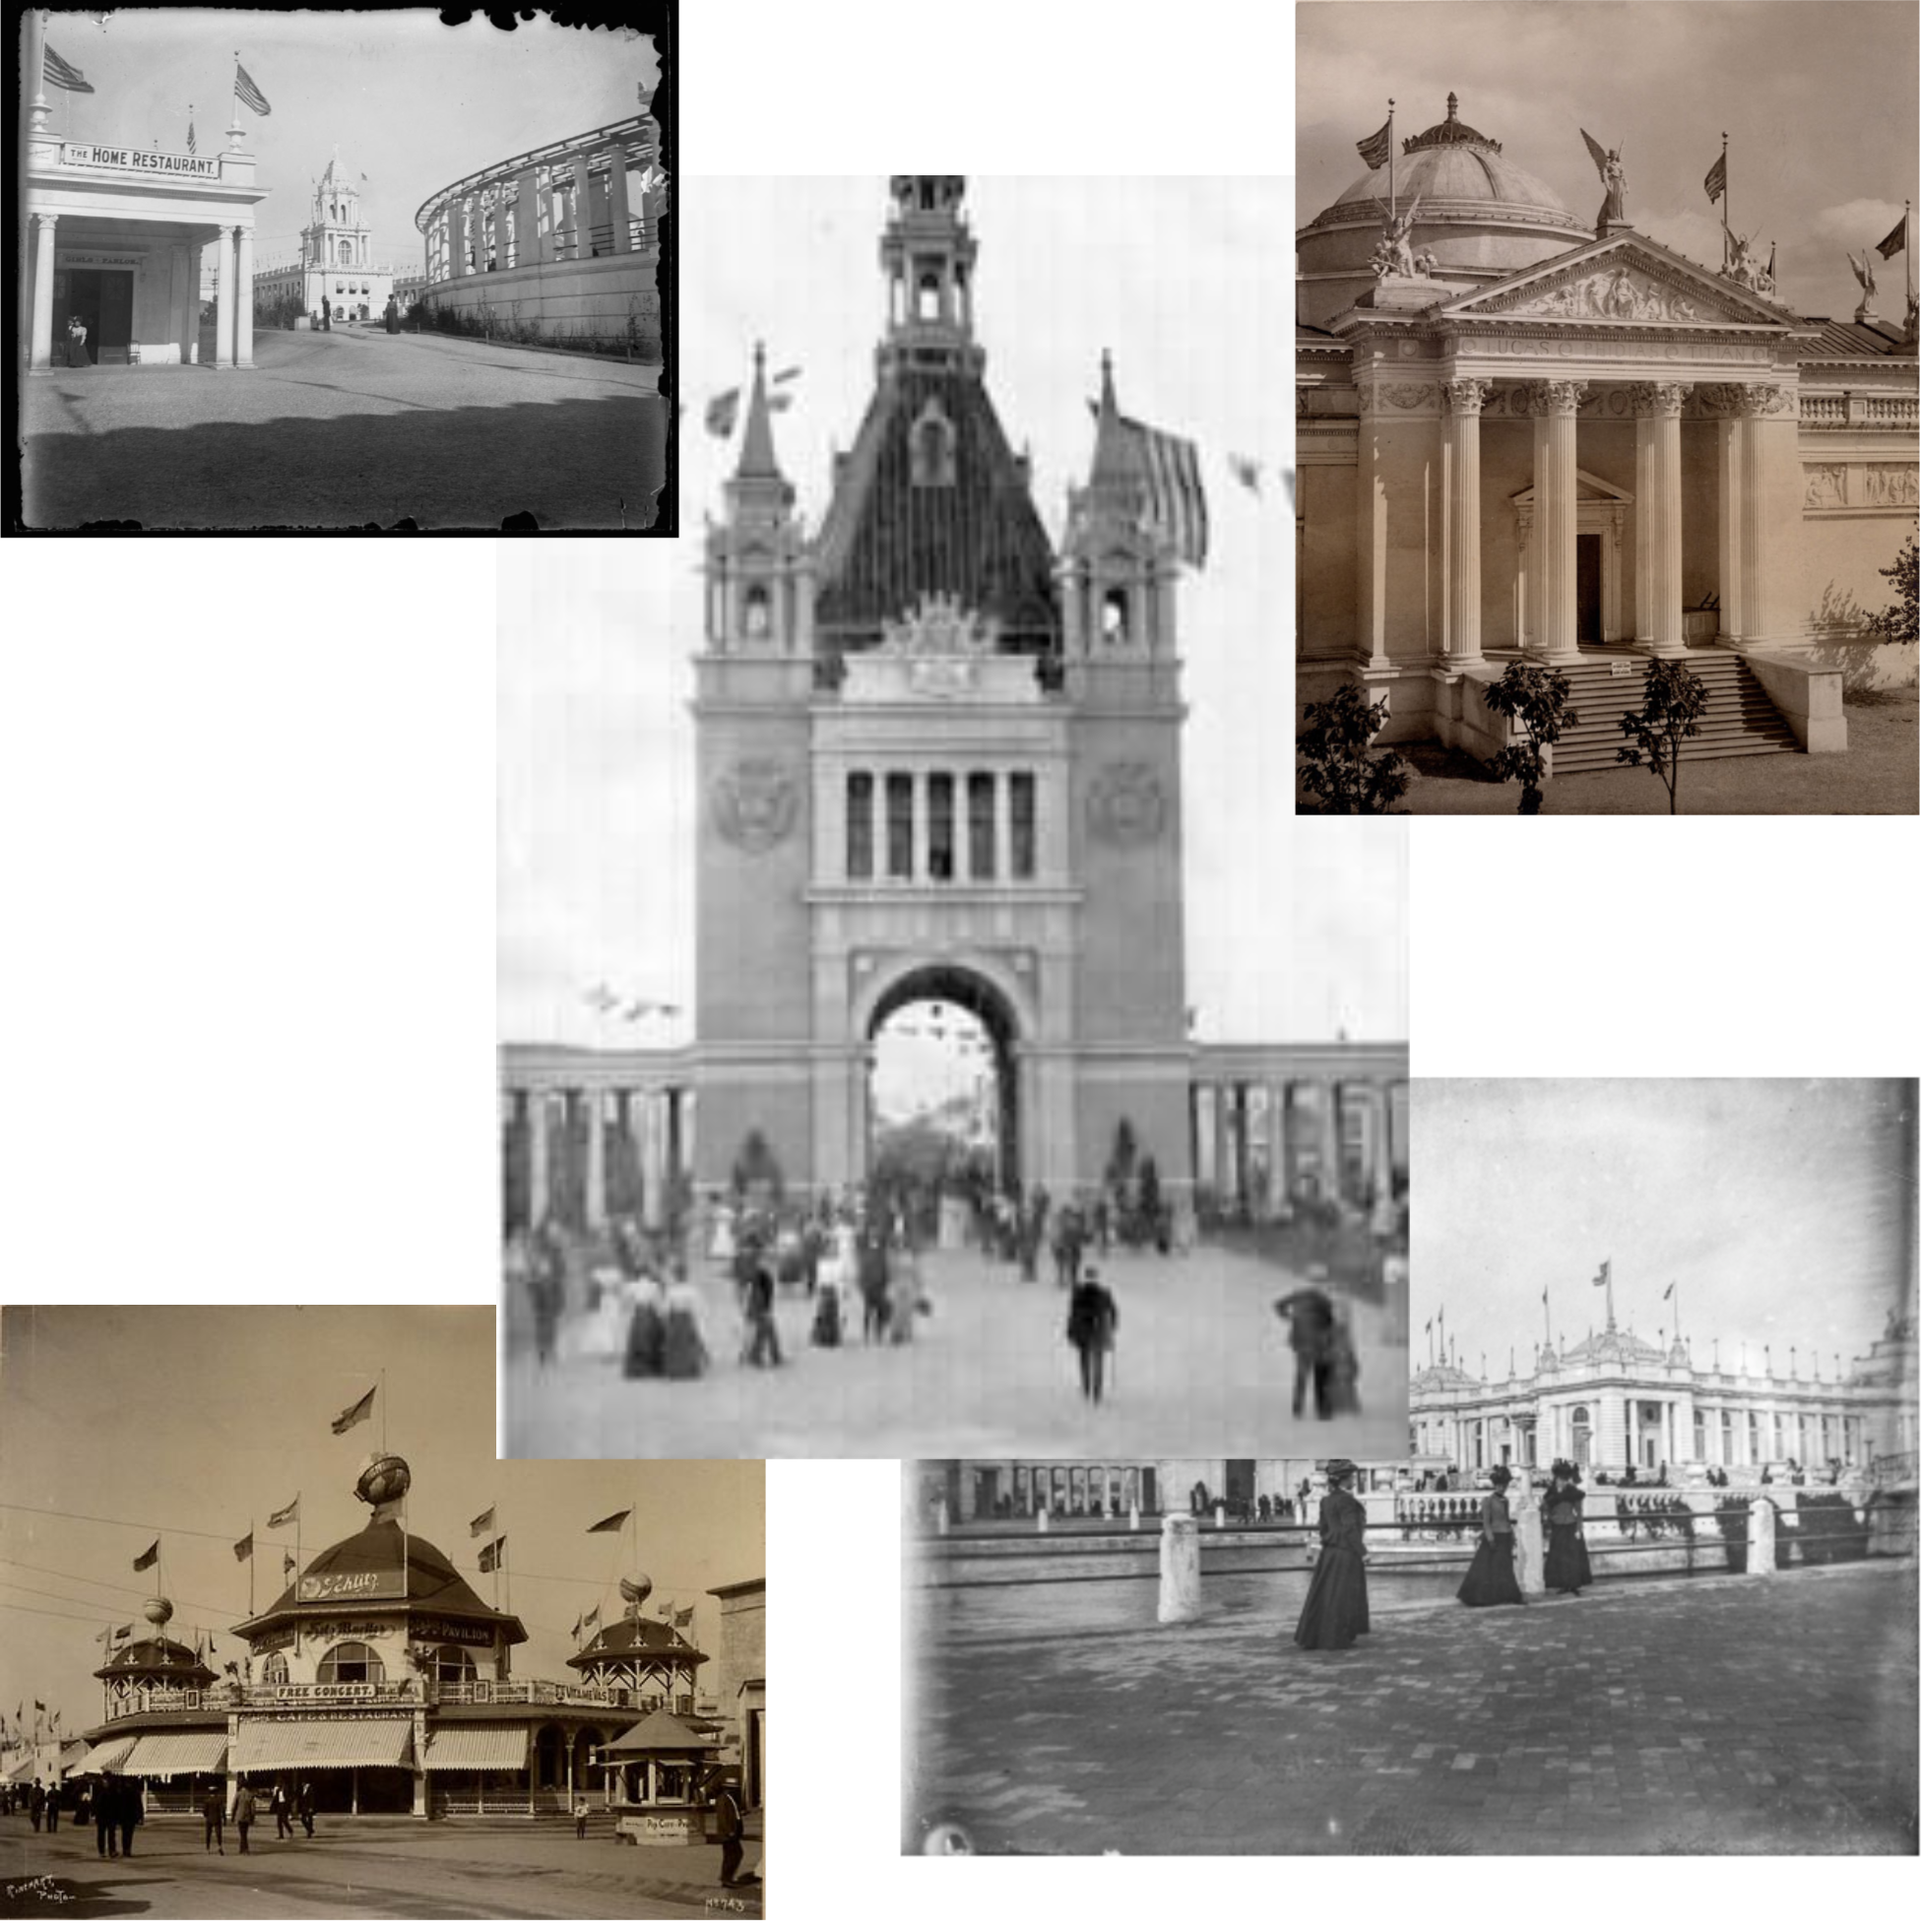 A sample of buildings at the 1898 Trans-Mississippi Exposition in North Omaha, Nebraska